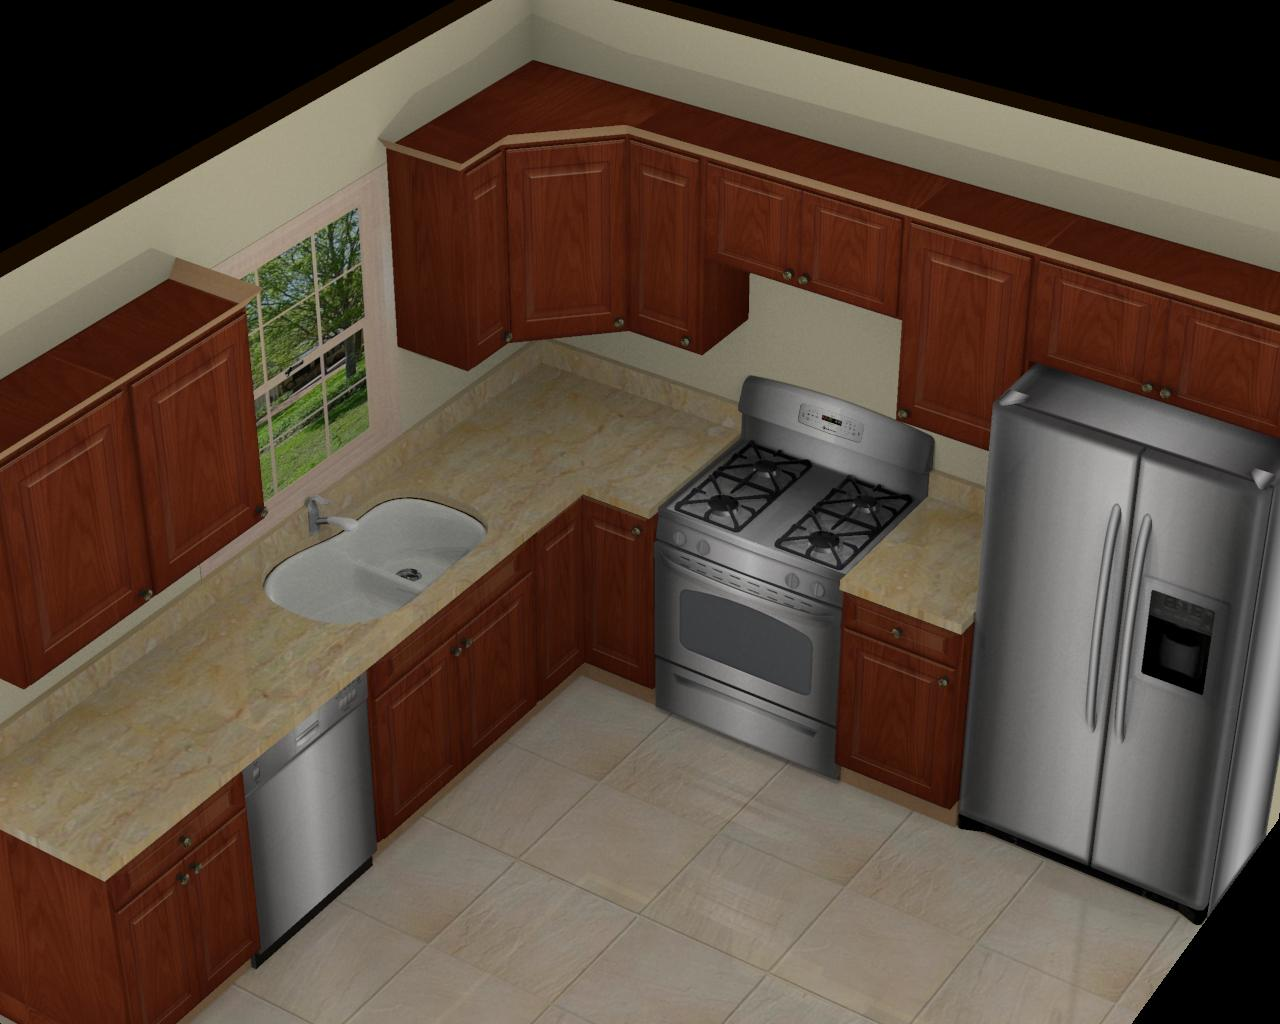 Pin 10x10 kitchen layout image search results on pinterest for Kitchen design 6 x 8